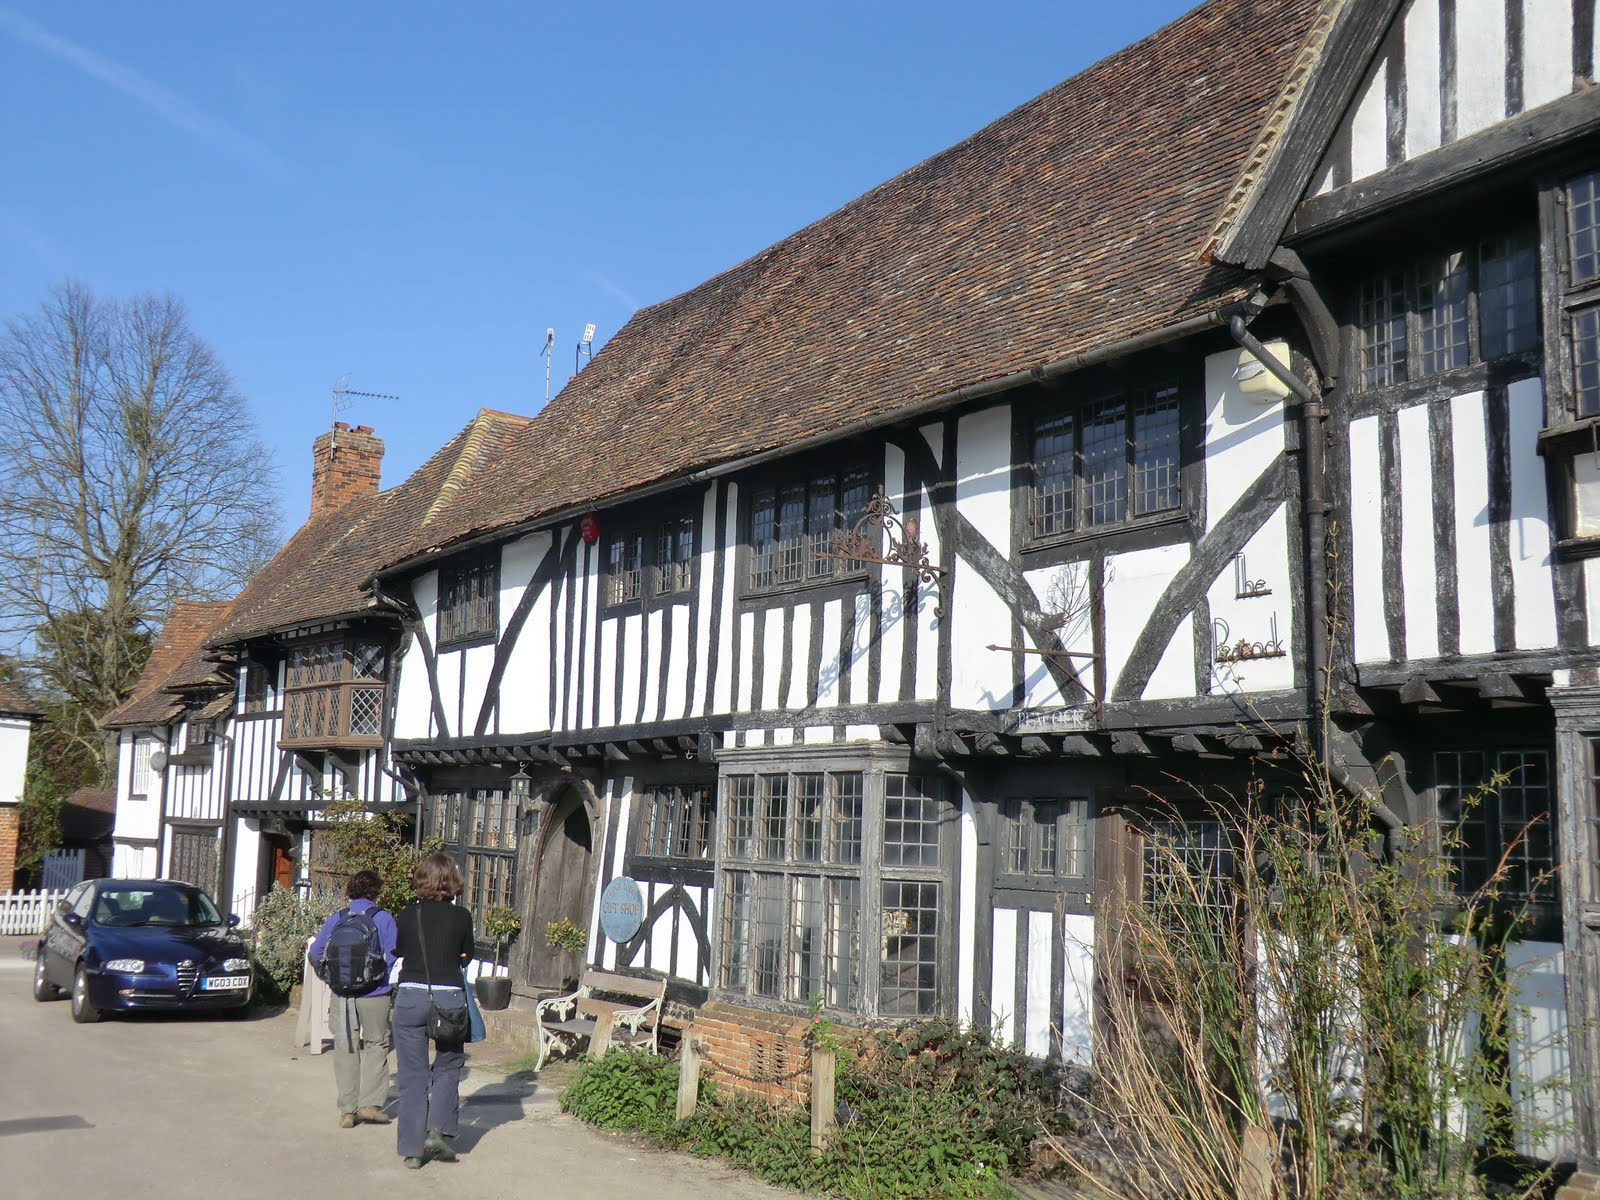 CIMG2565 Chilham